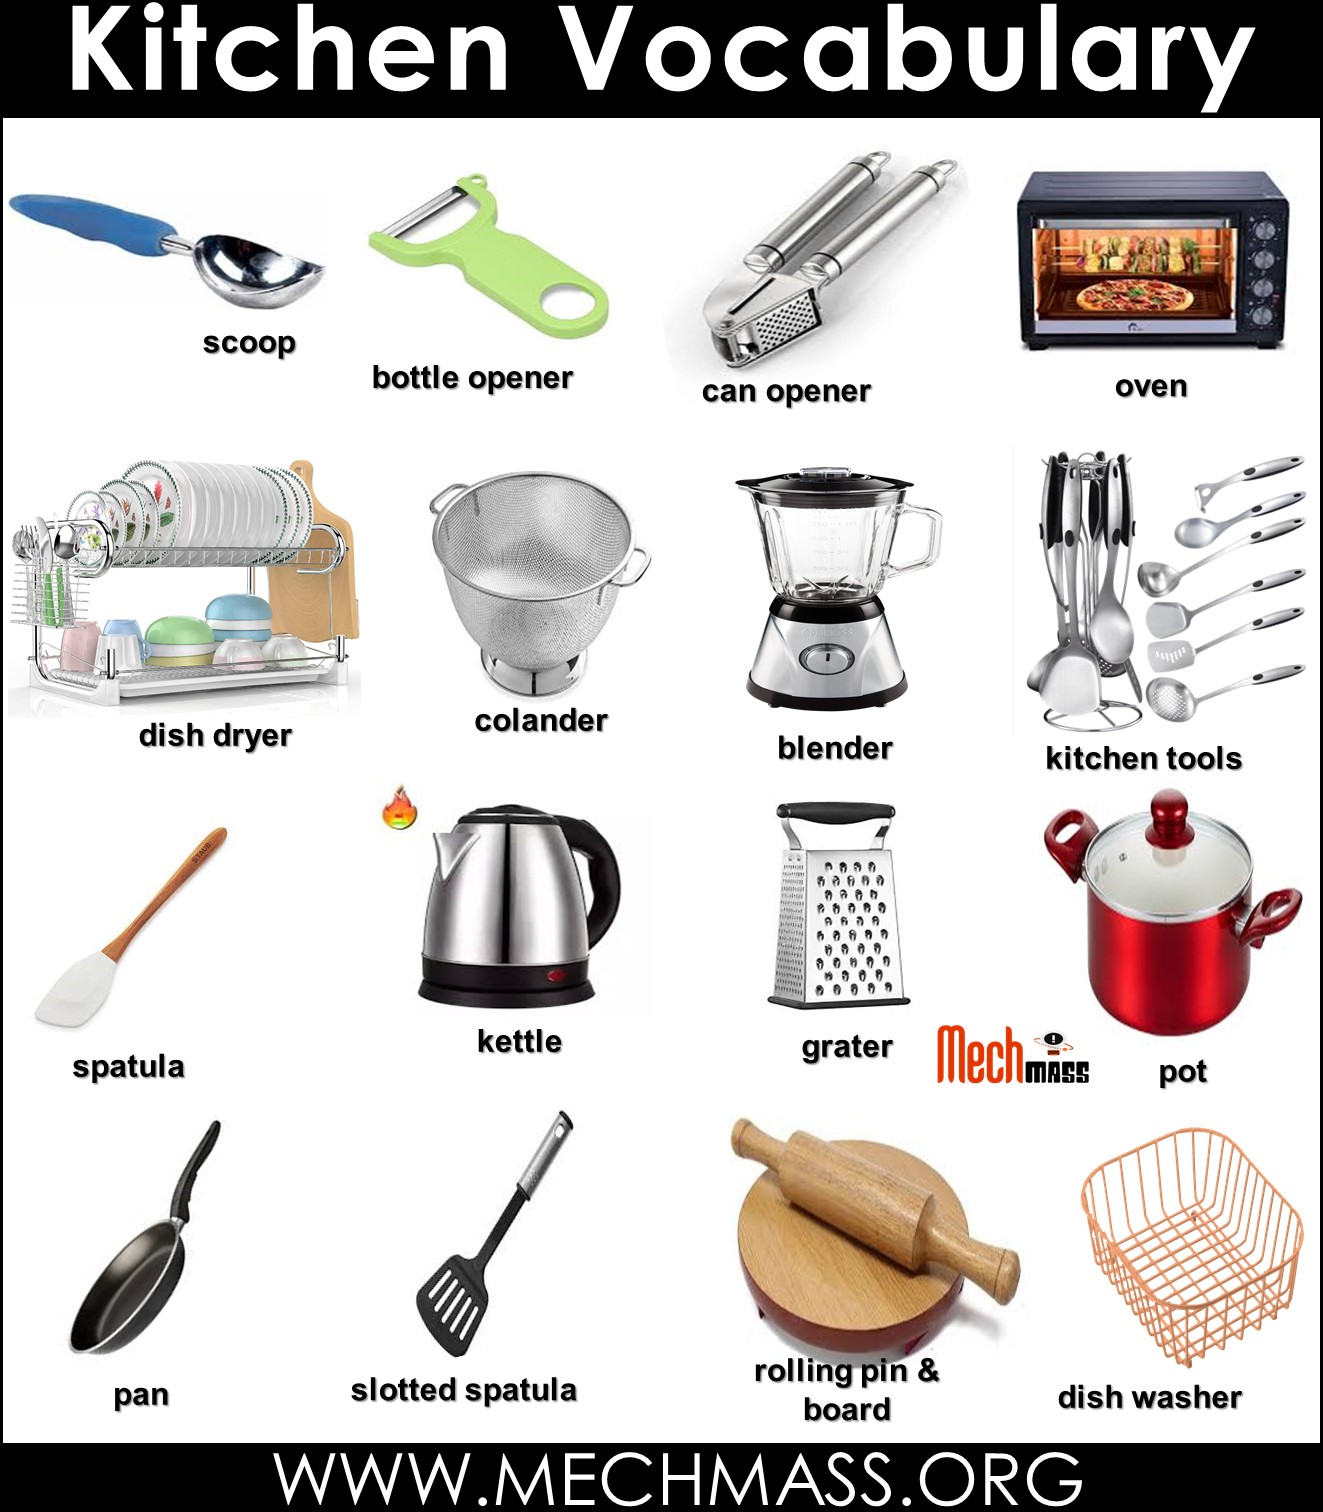 kitchen vocabulary words with pictures